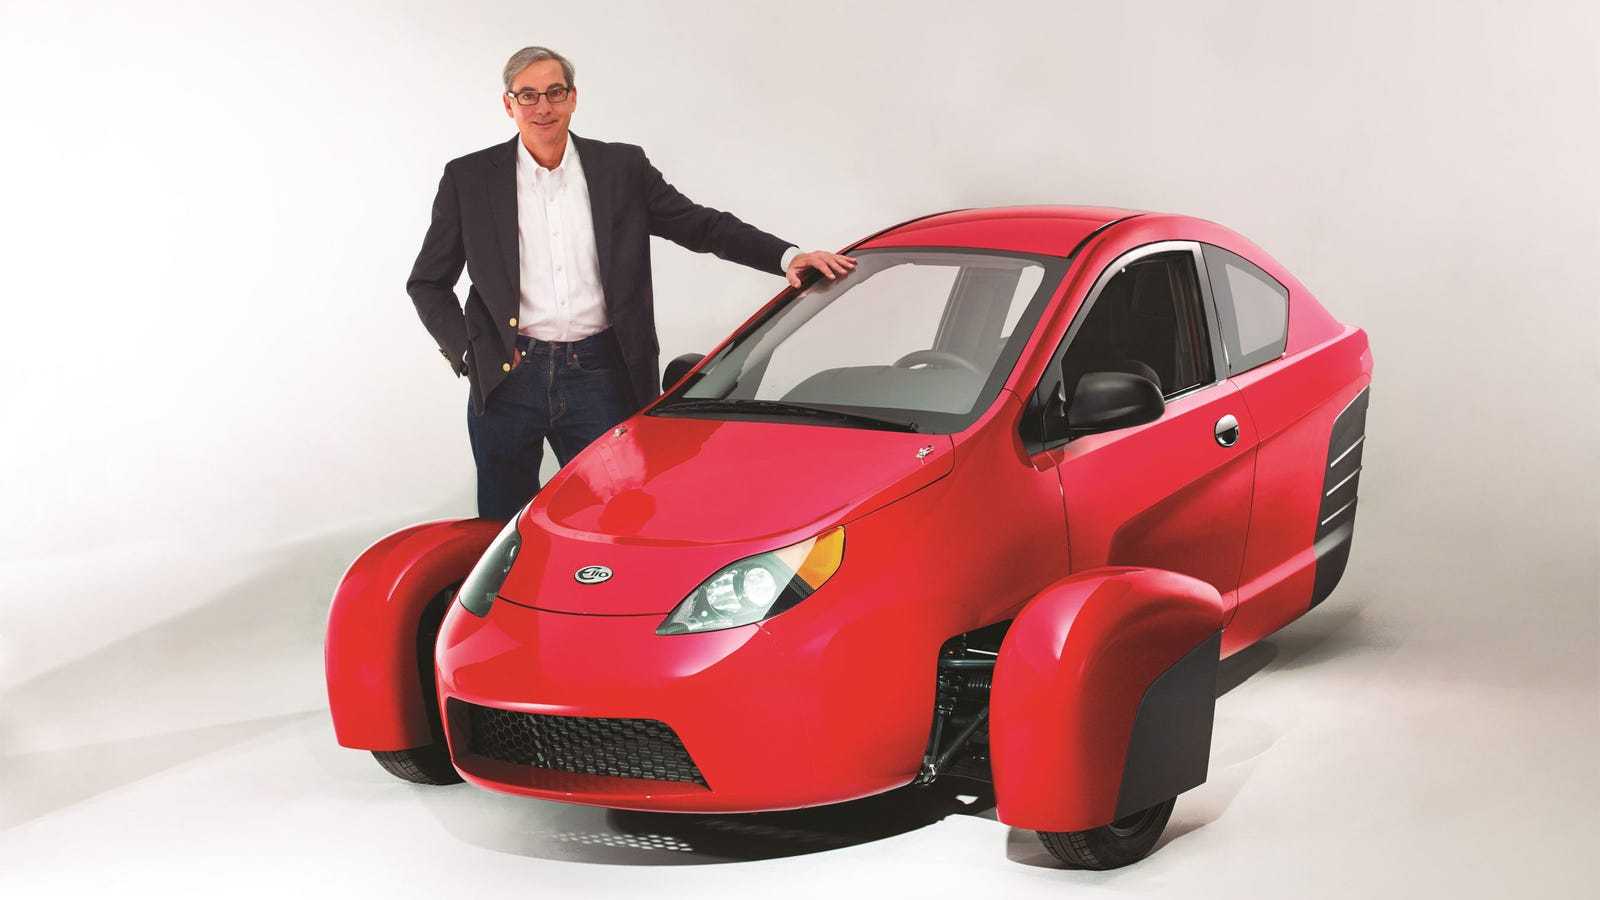 Elio motors given an extension to bring its three wheeled vehicle to life